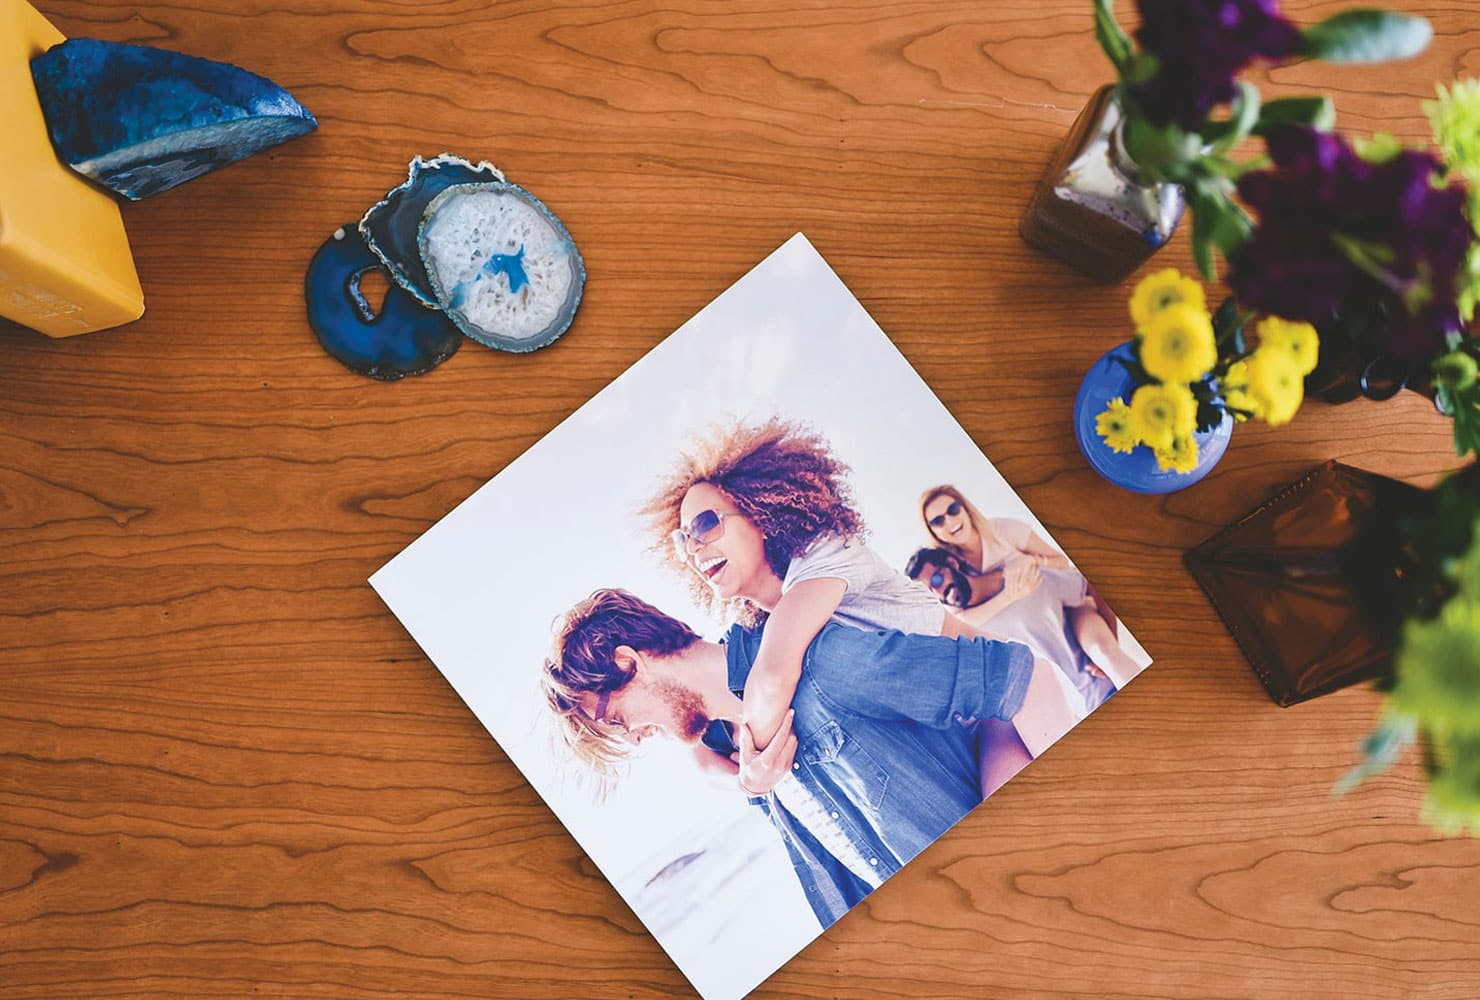 photo tray sits on a coffee table